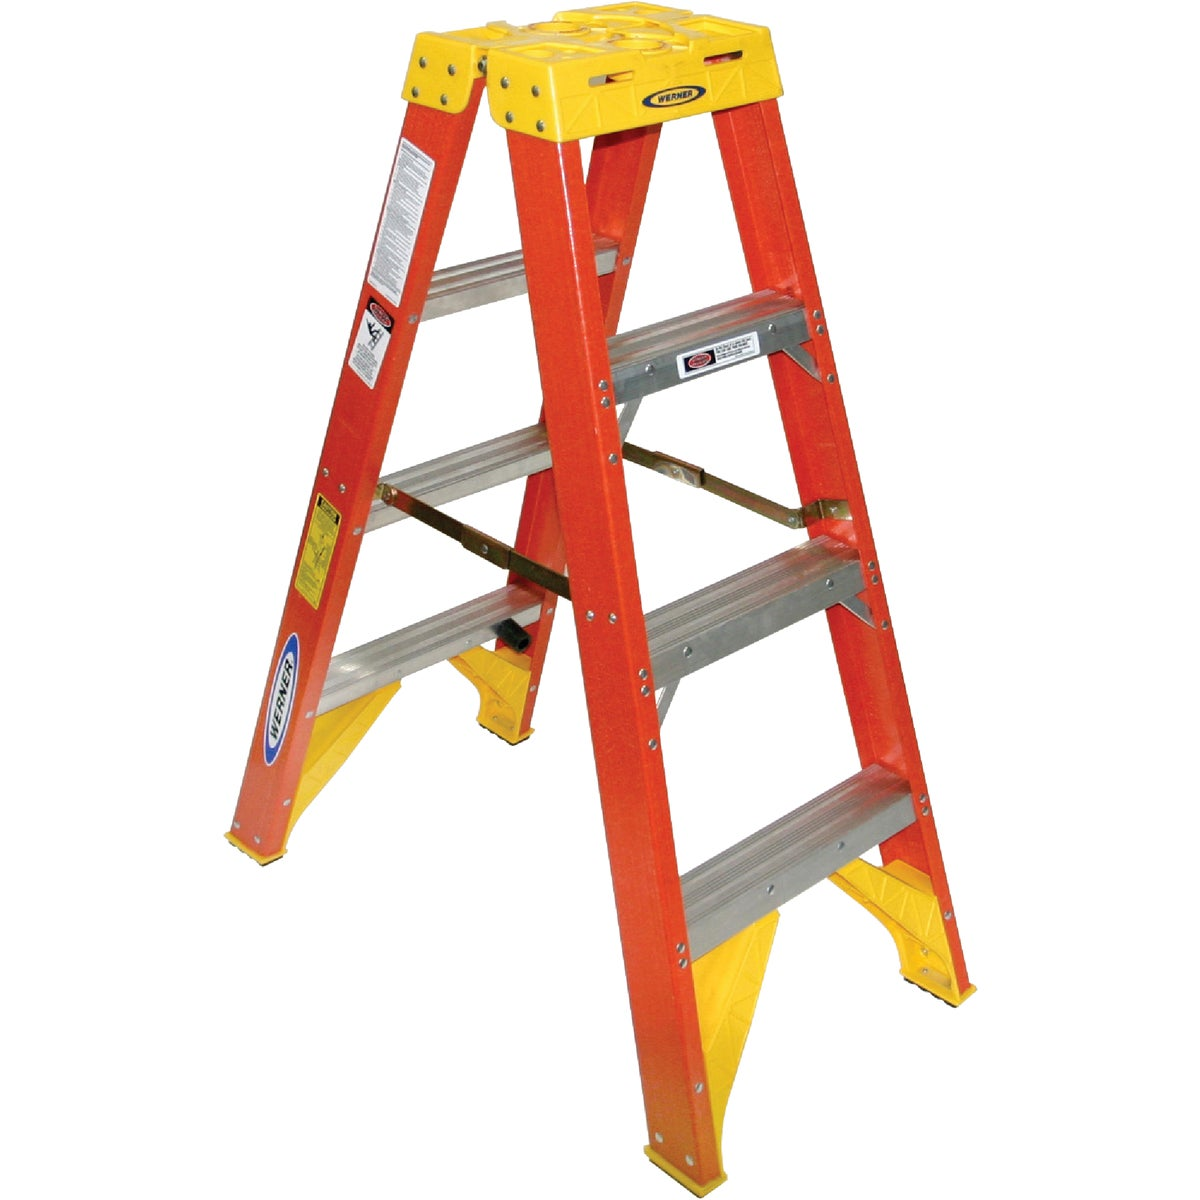 T-1A 4' TWIN STEPLADDER - T6204 by Werner Ladder